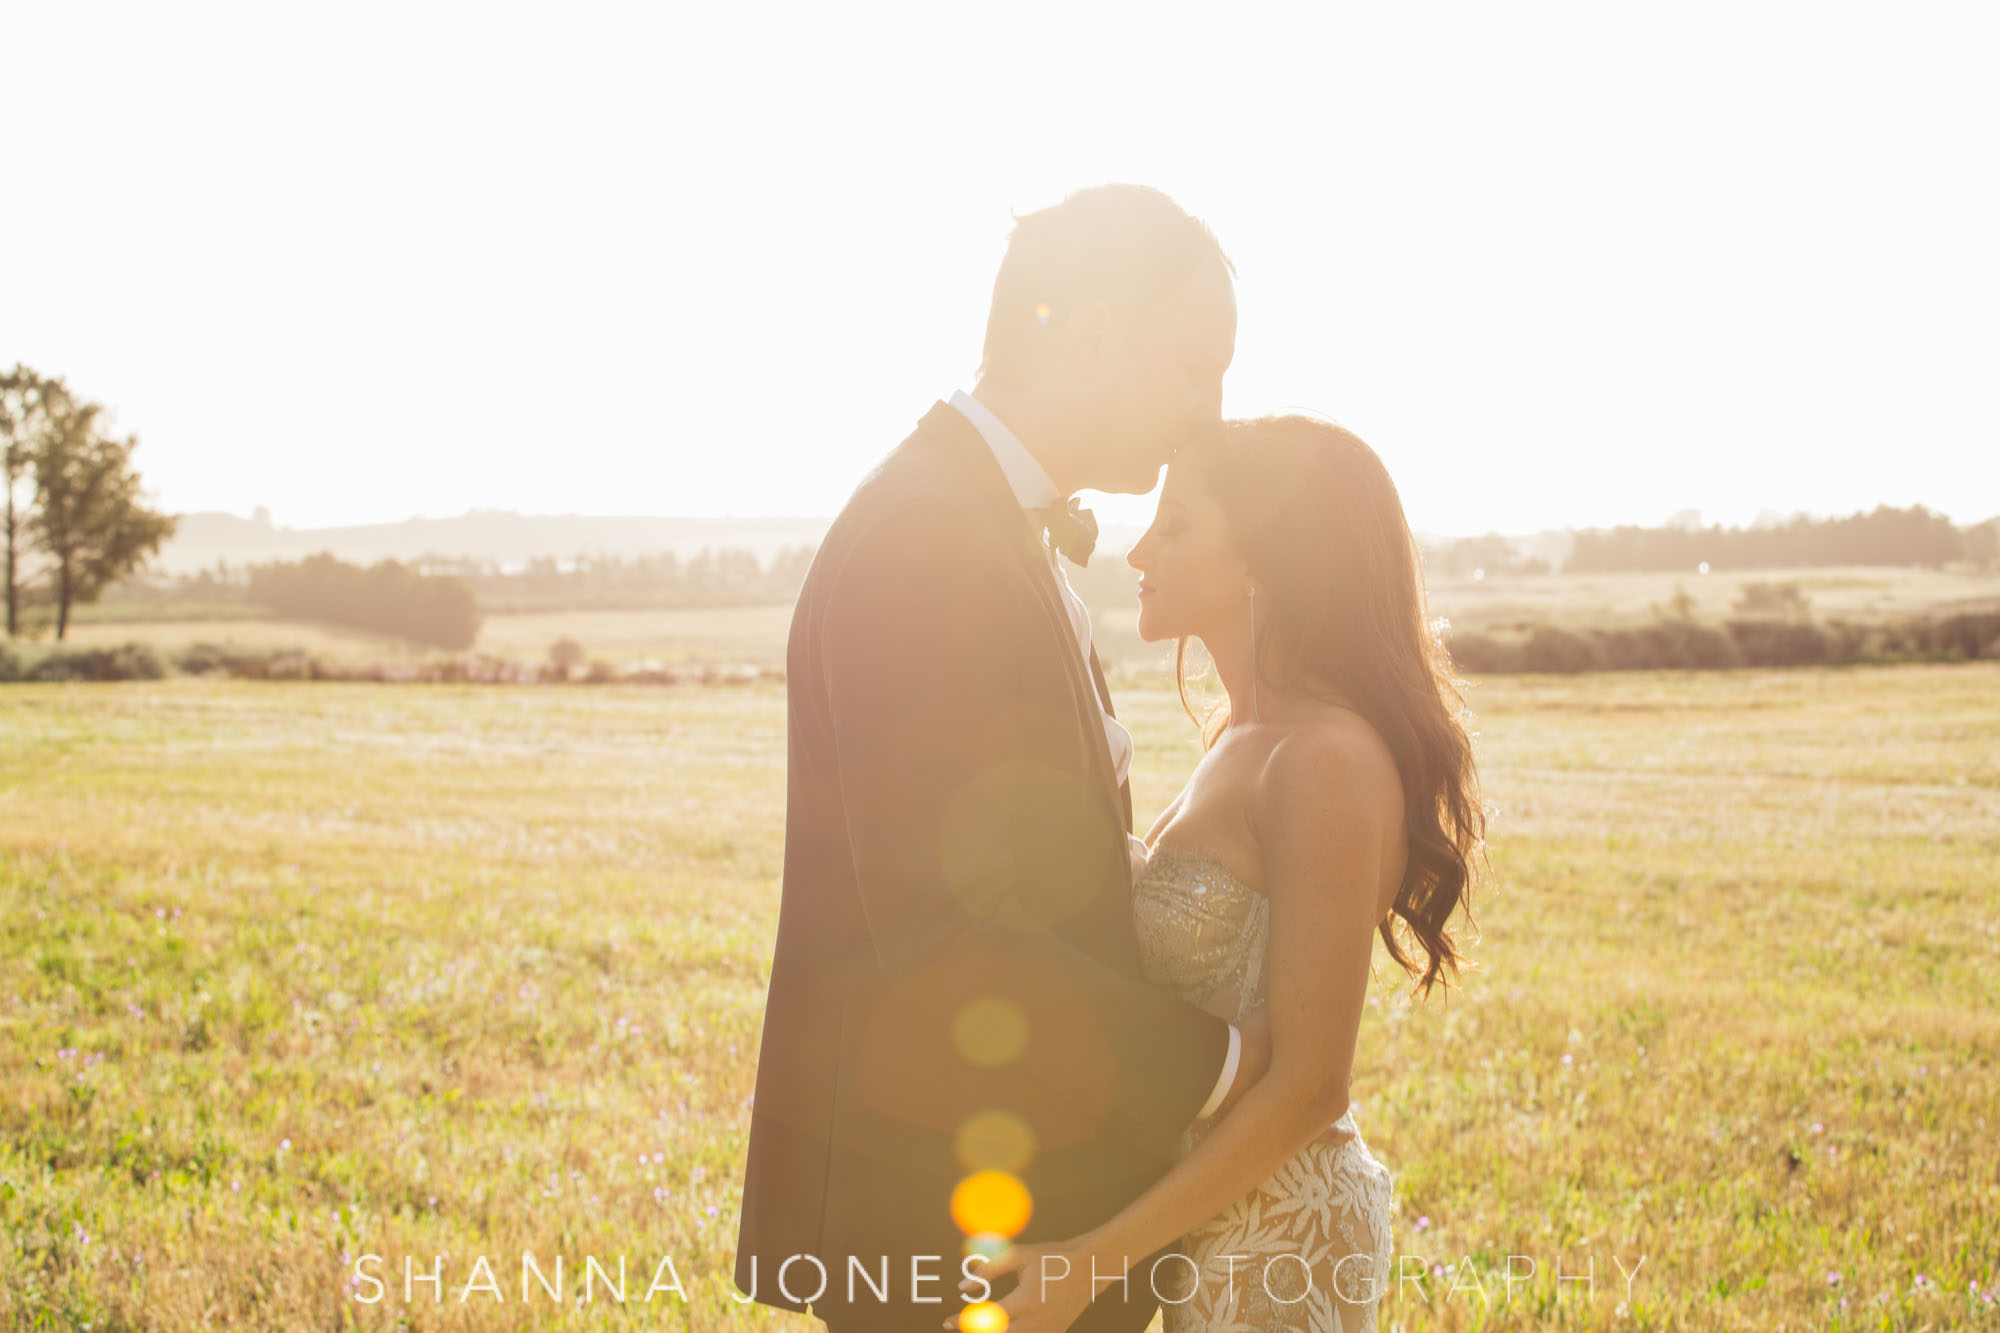 anura-cape-town-wedding-shanna-jones-photography-danna-paul-119.jpg